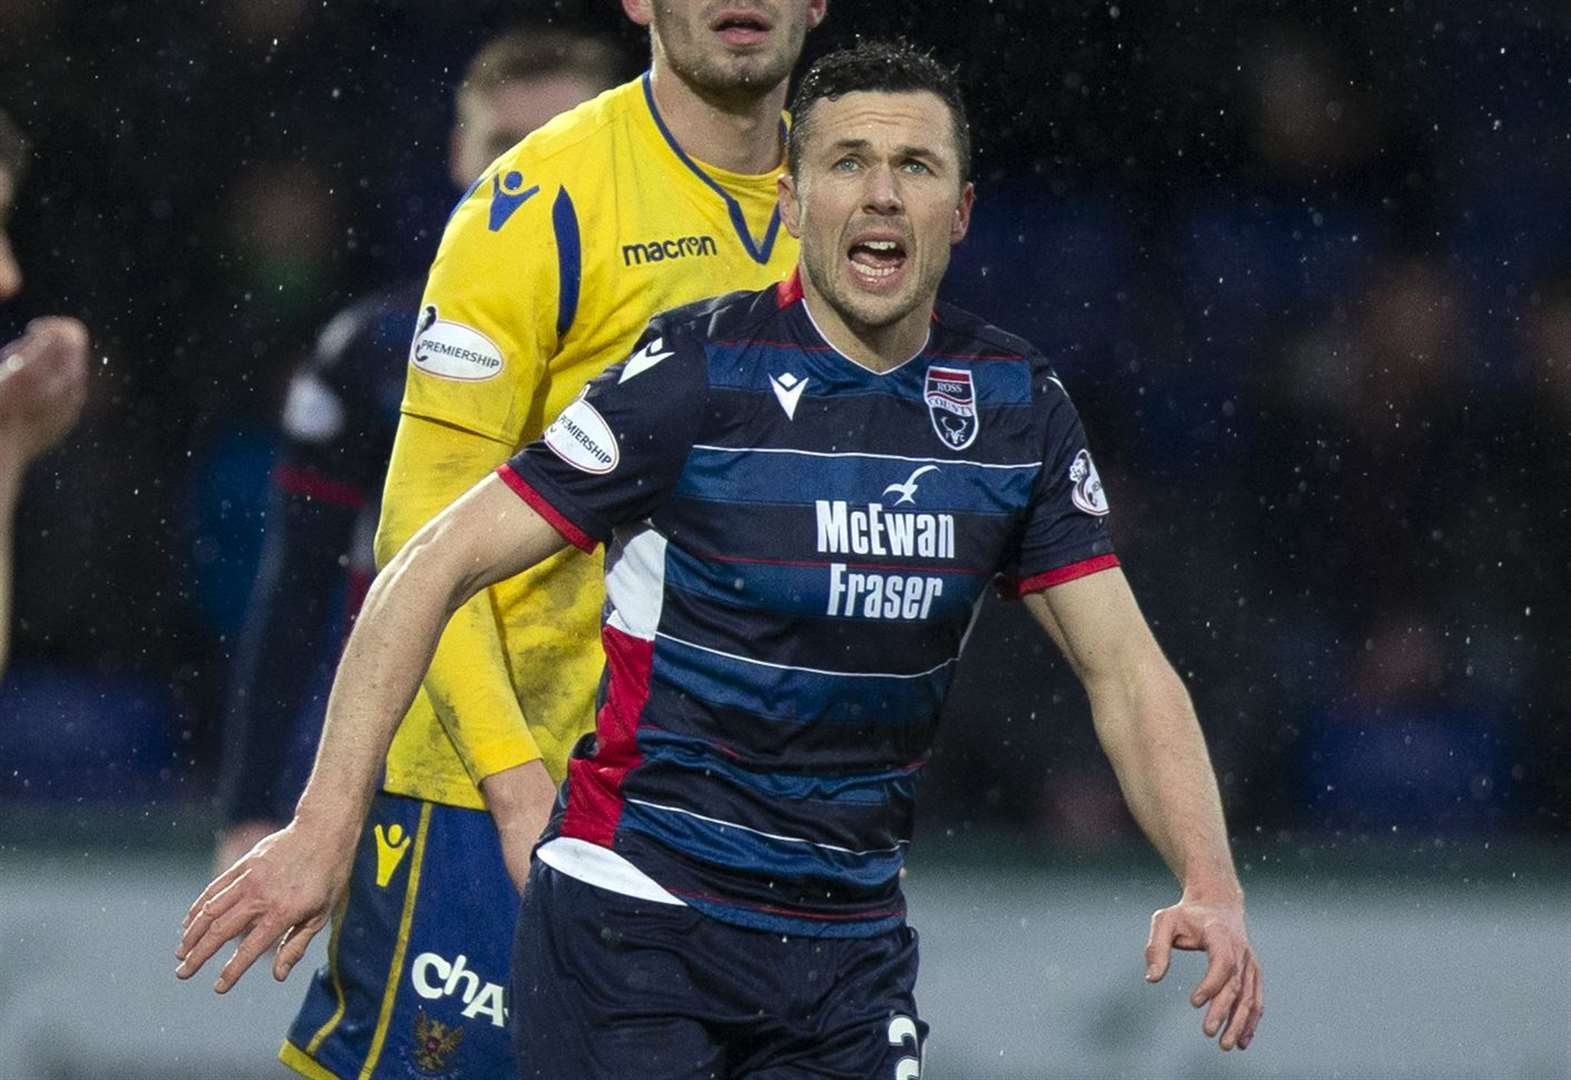 Cowie to donate if Staggies complete challenge